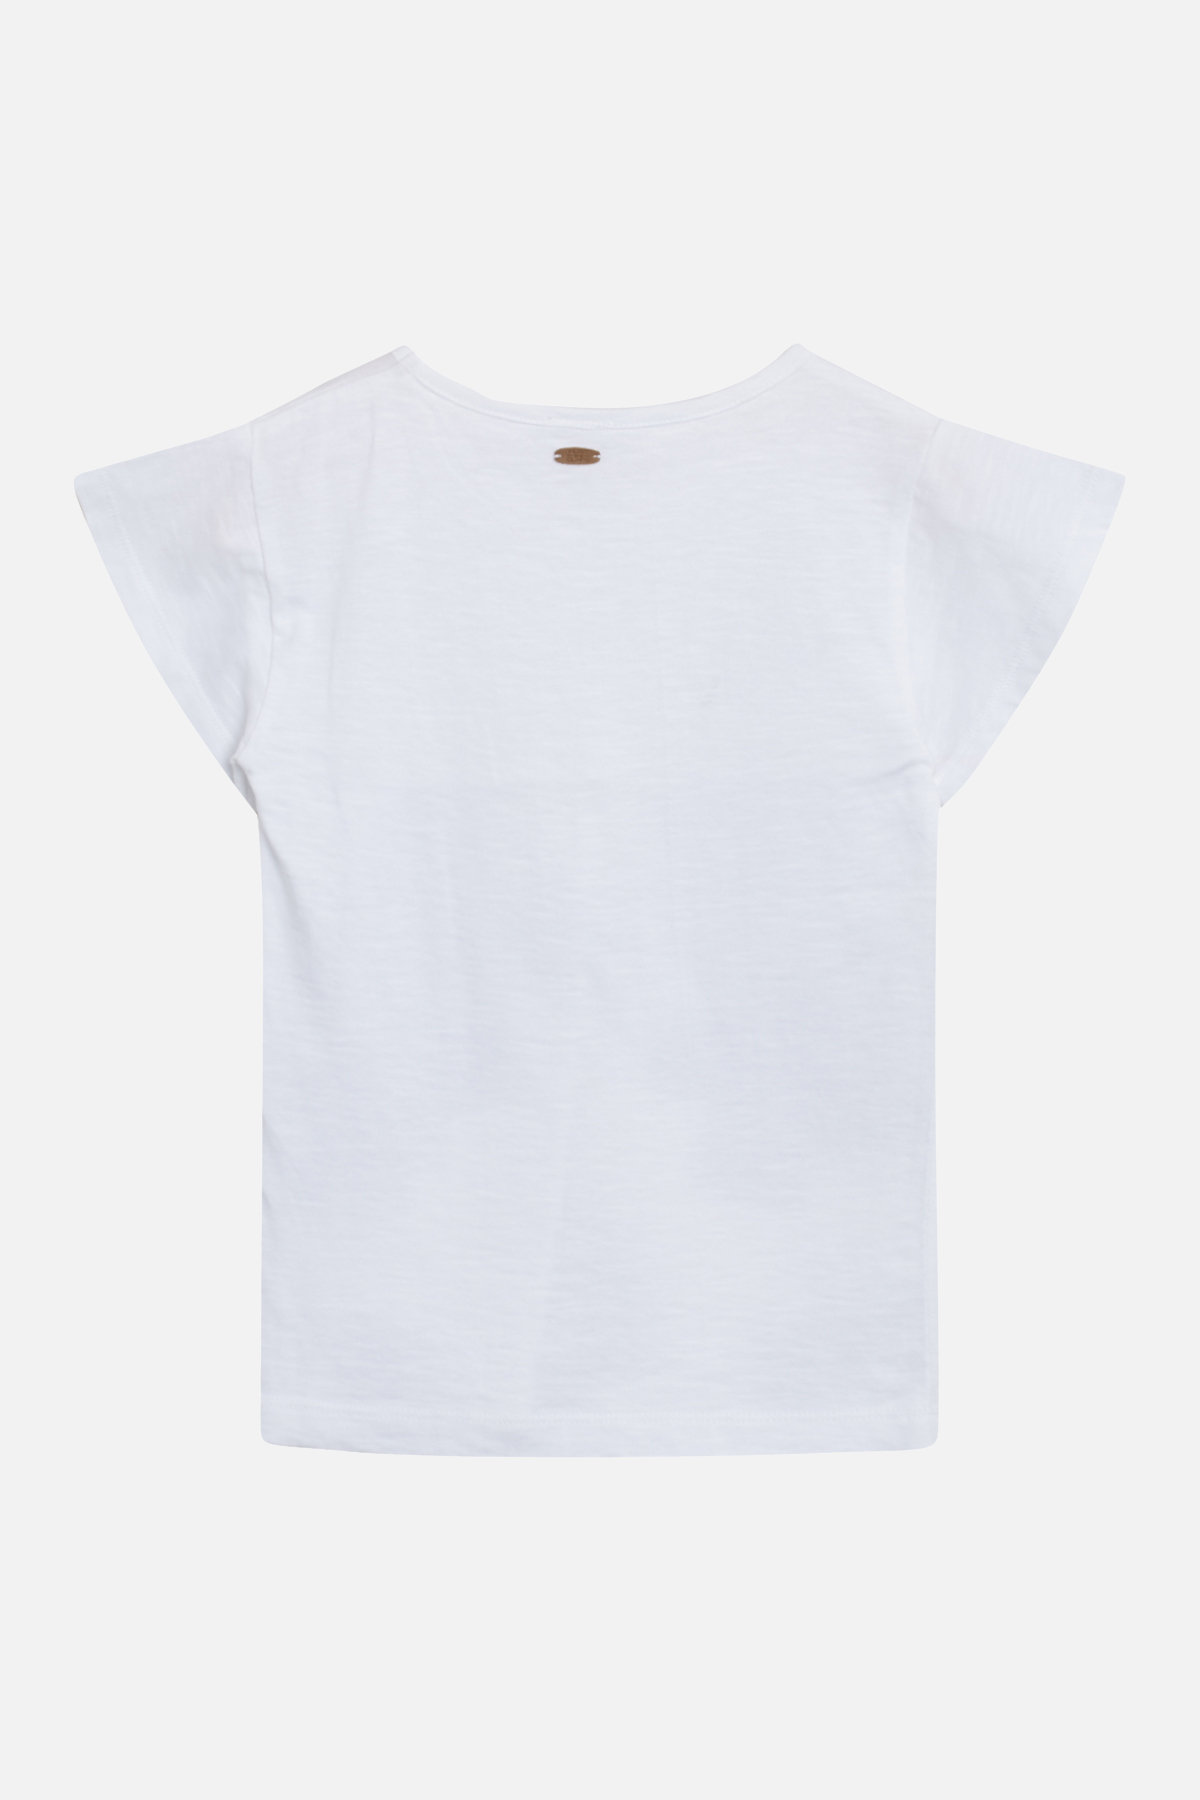 Hust & Claire Aiko t-shirt, hvid, 116